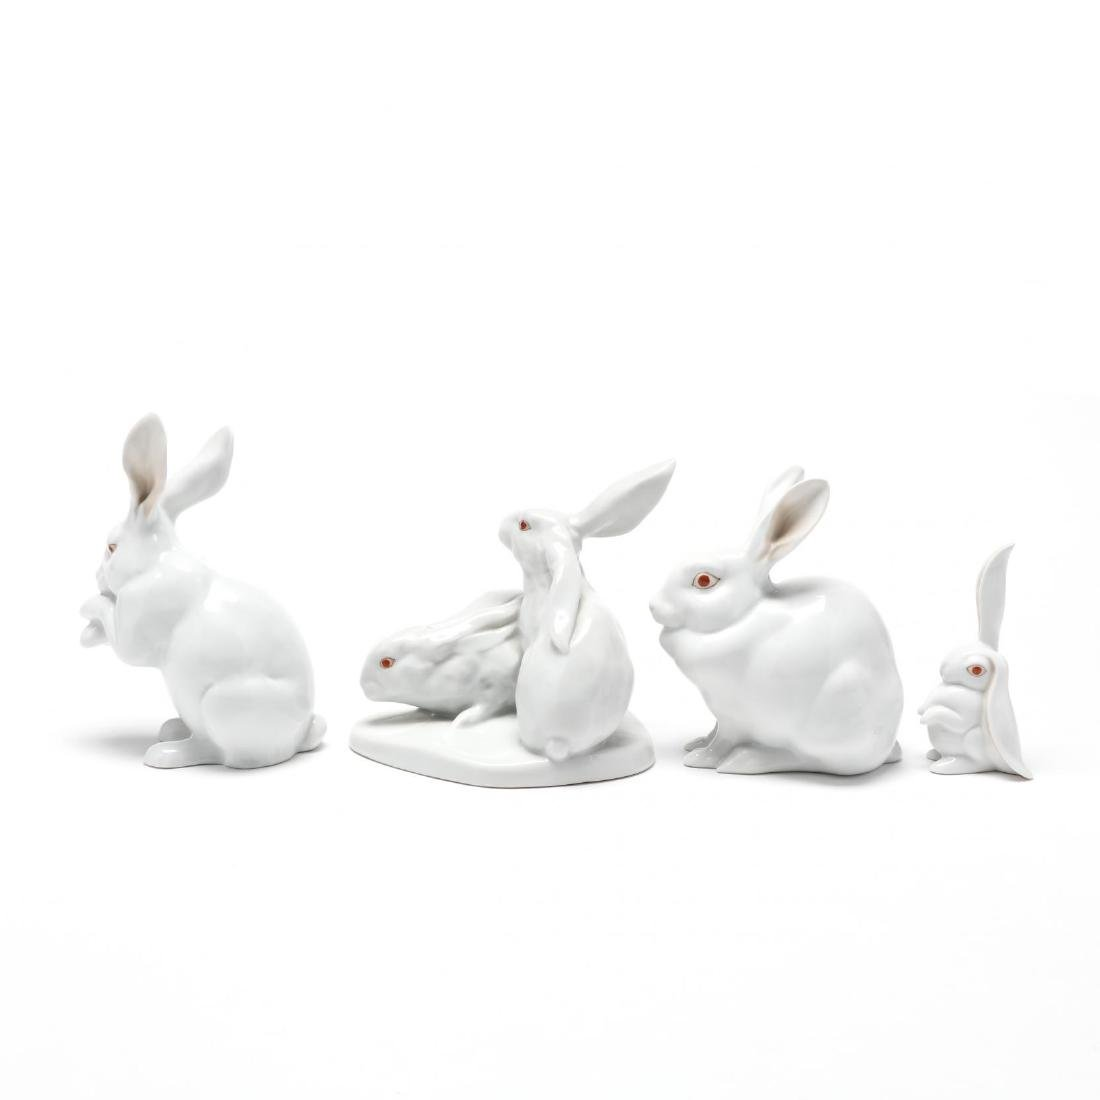 Four Herend Natural Porcelain Rabbits - 4